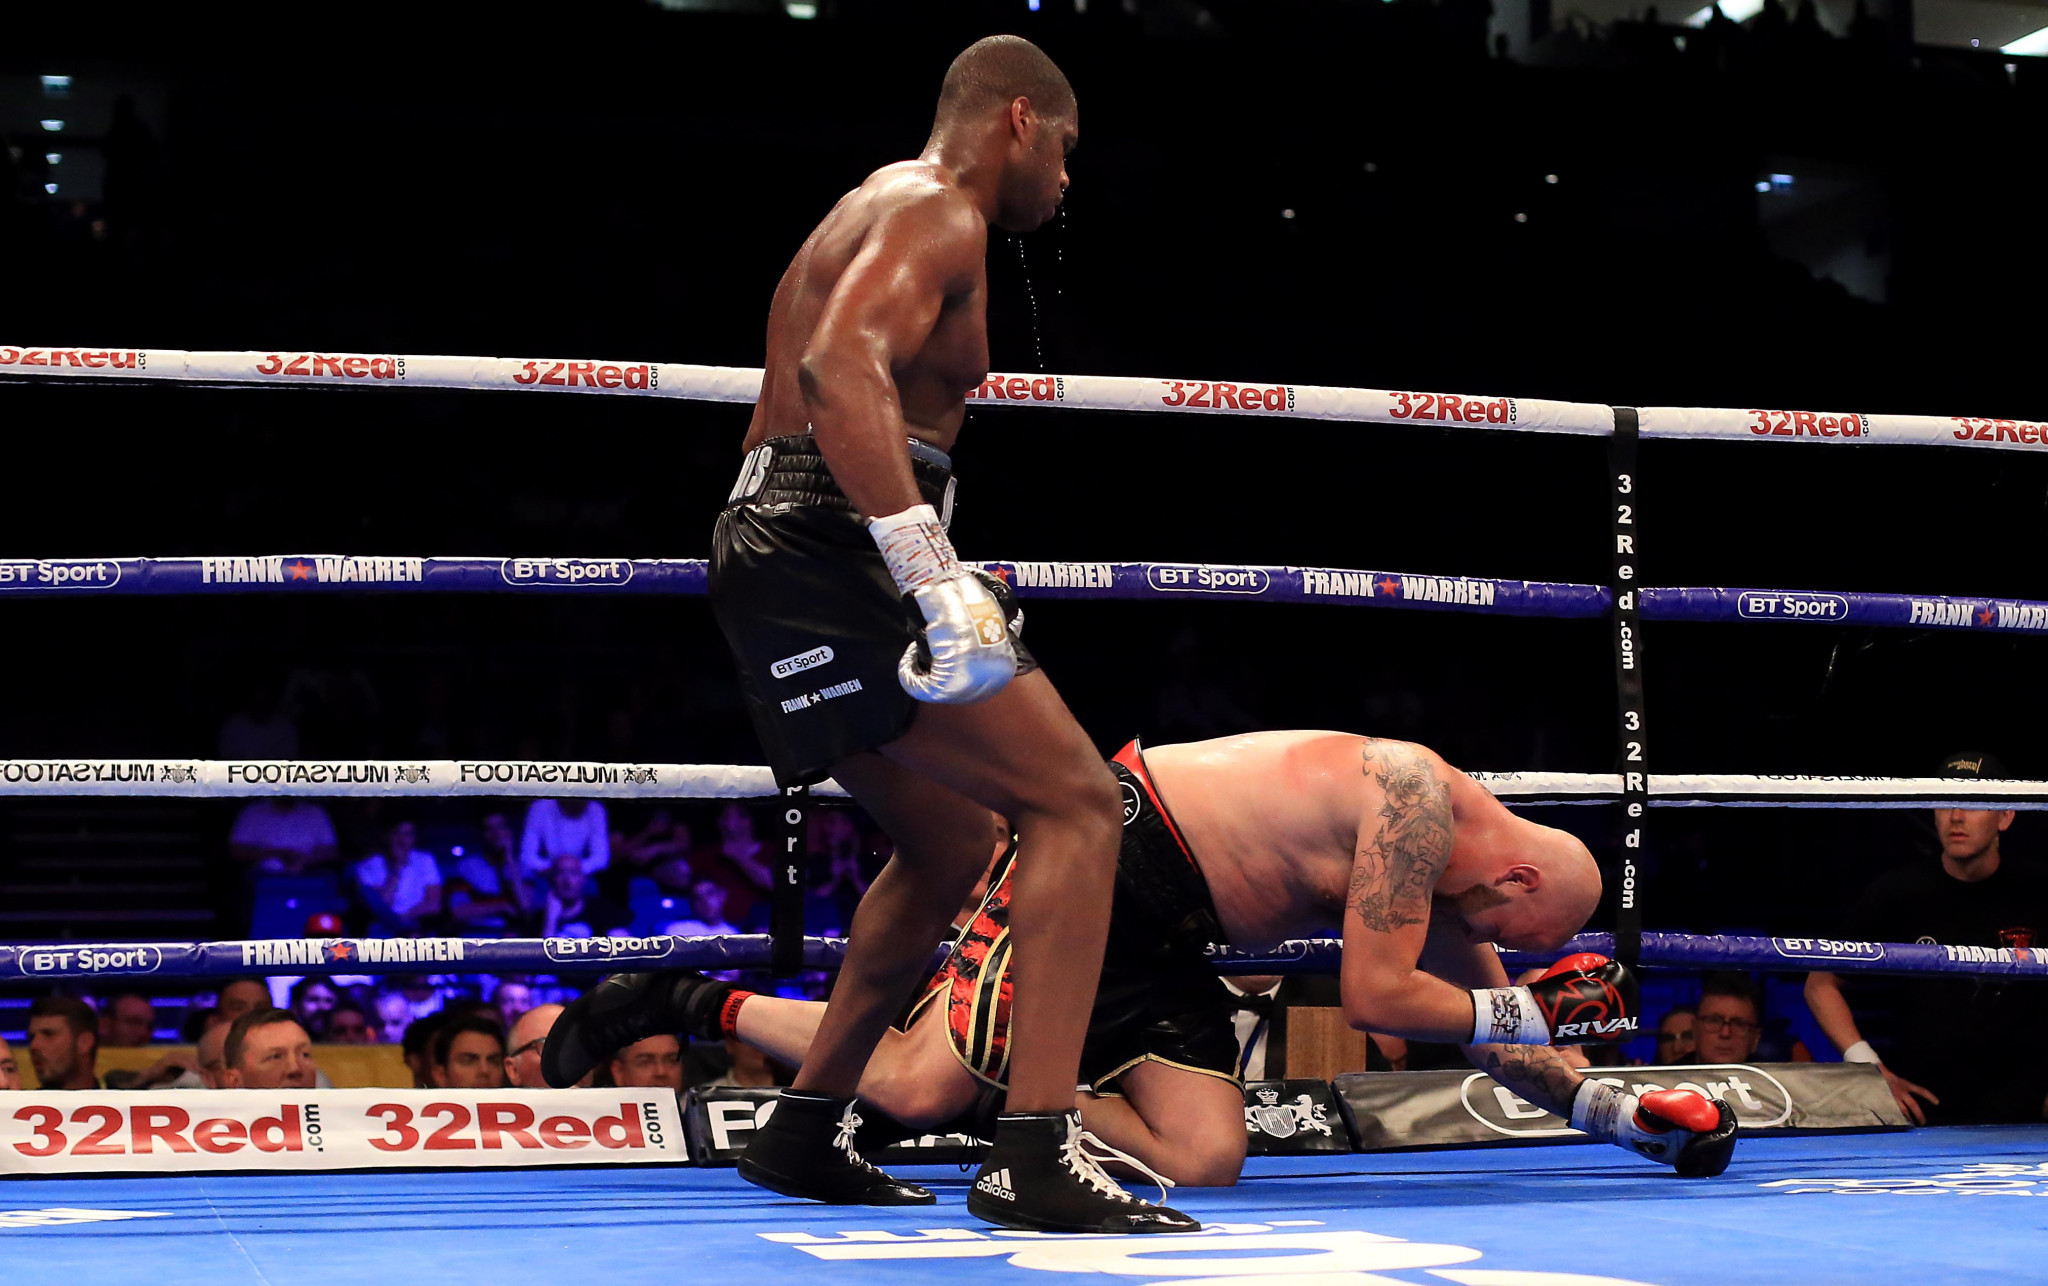 Daniel Dubois, pictured above completing a knockout victory, is predicted to be one of the best prospects in boxing ©Getty Images